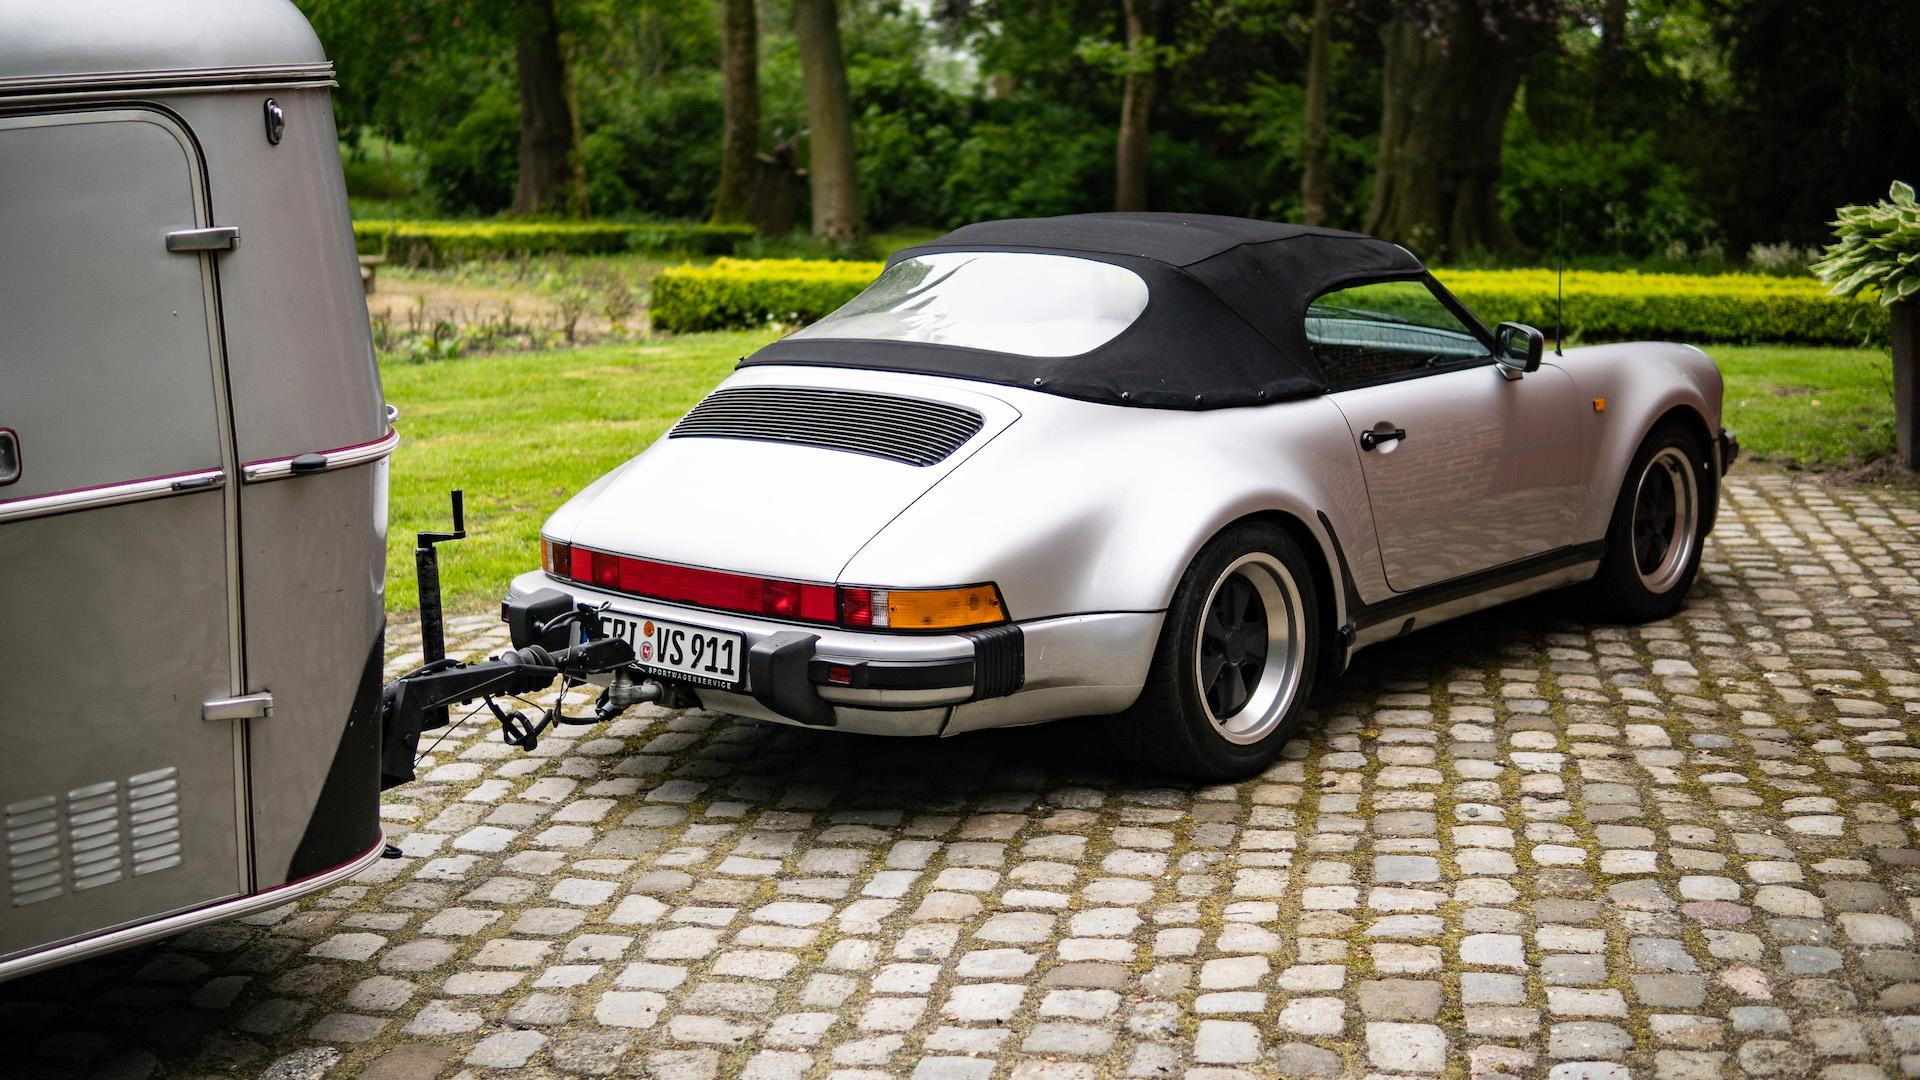 1989 Porsche 911 Speedster with matching camper